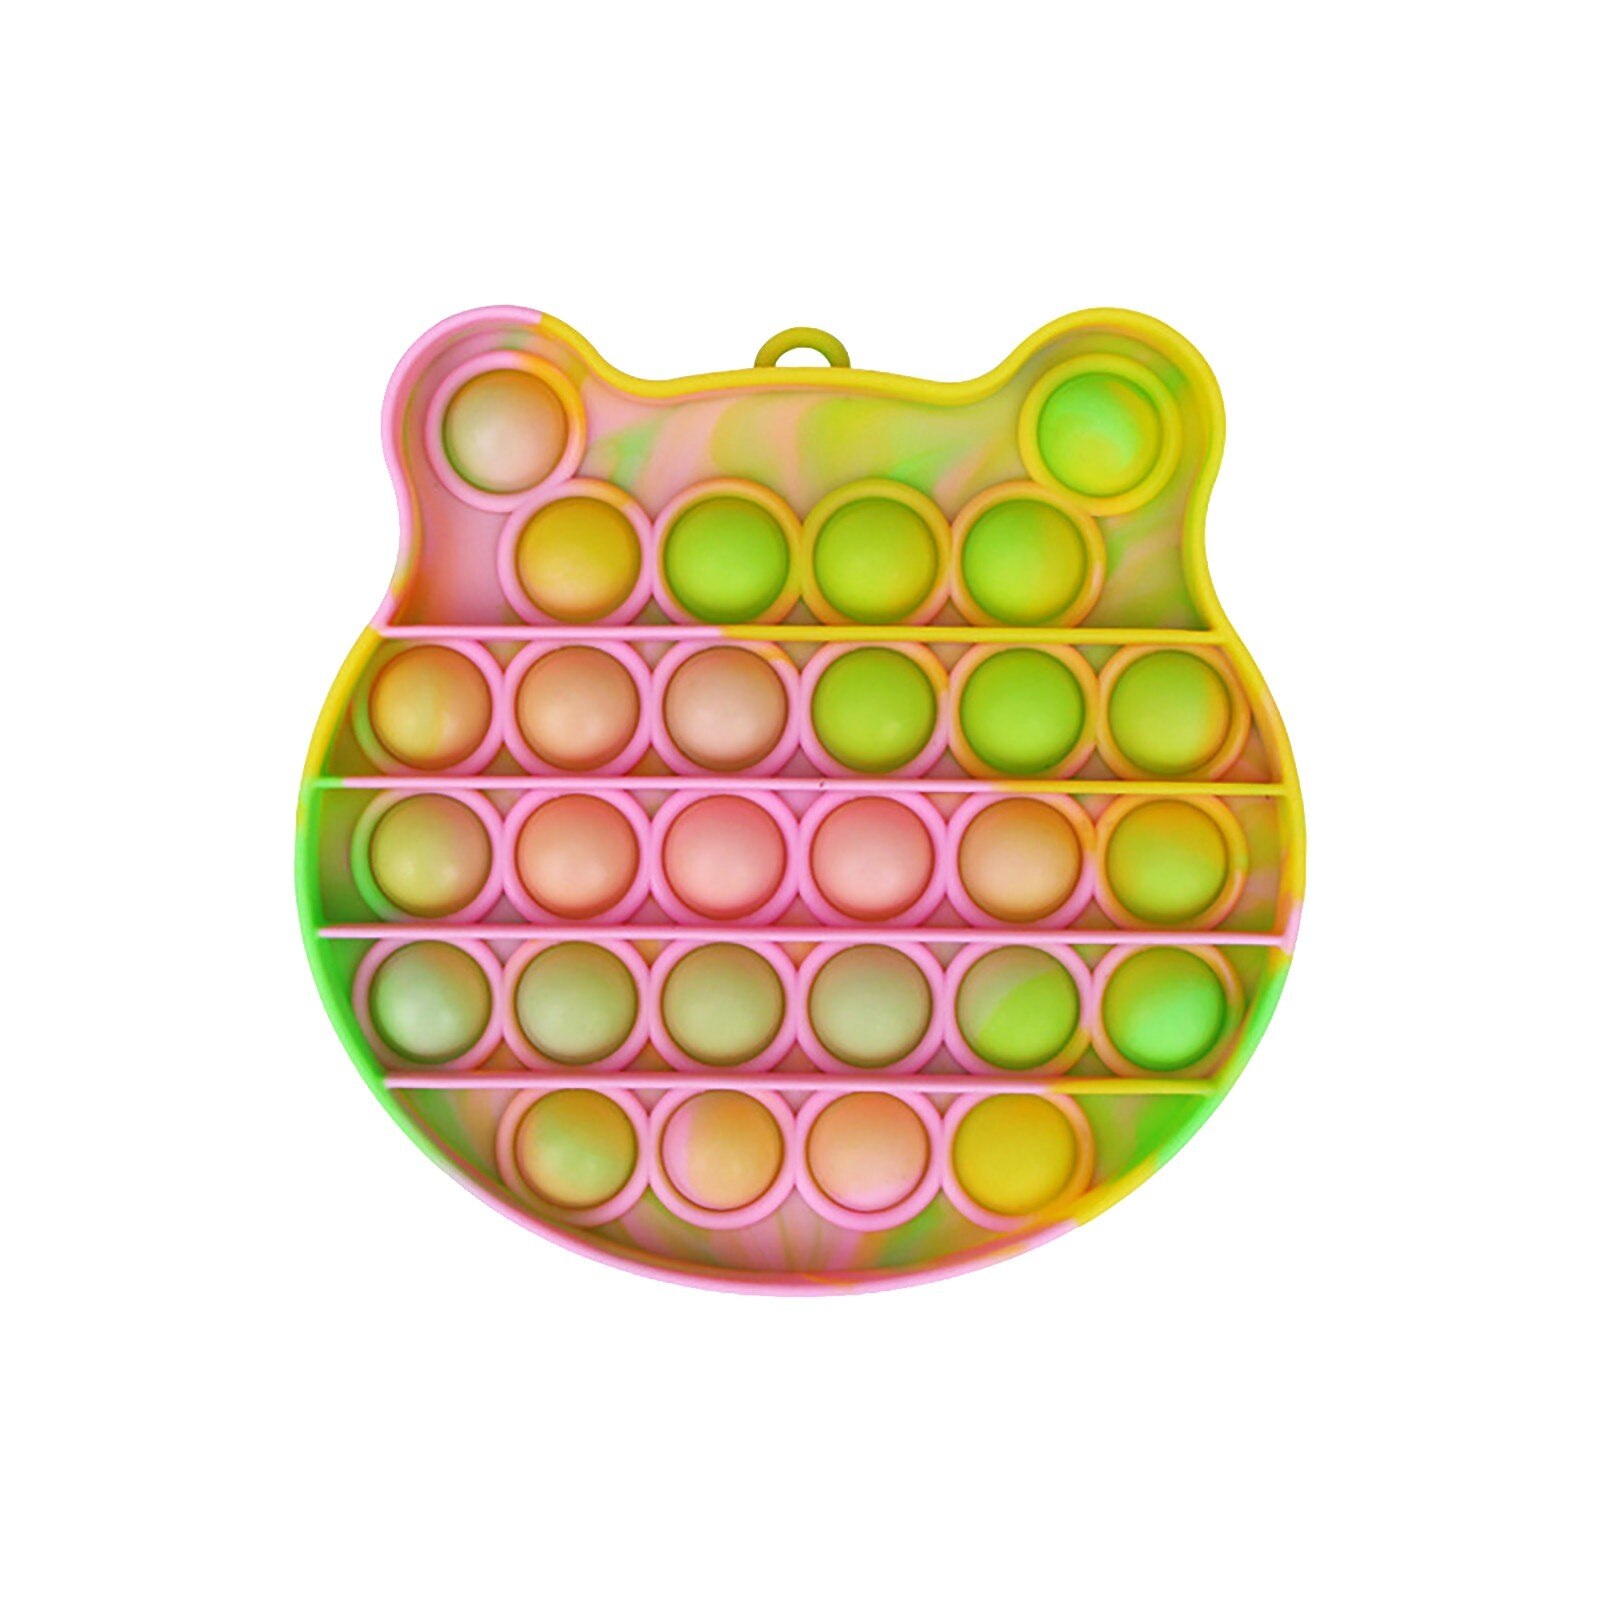 AliExpress - Colorful Fitget Toys Pop It Game For Adult Kid Push Bubble Fidget Sensory Toy Autism Special Needs Stress Reliever Popoit